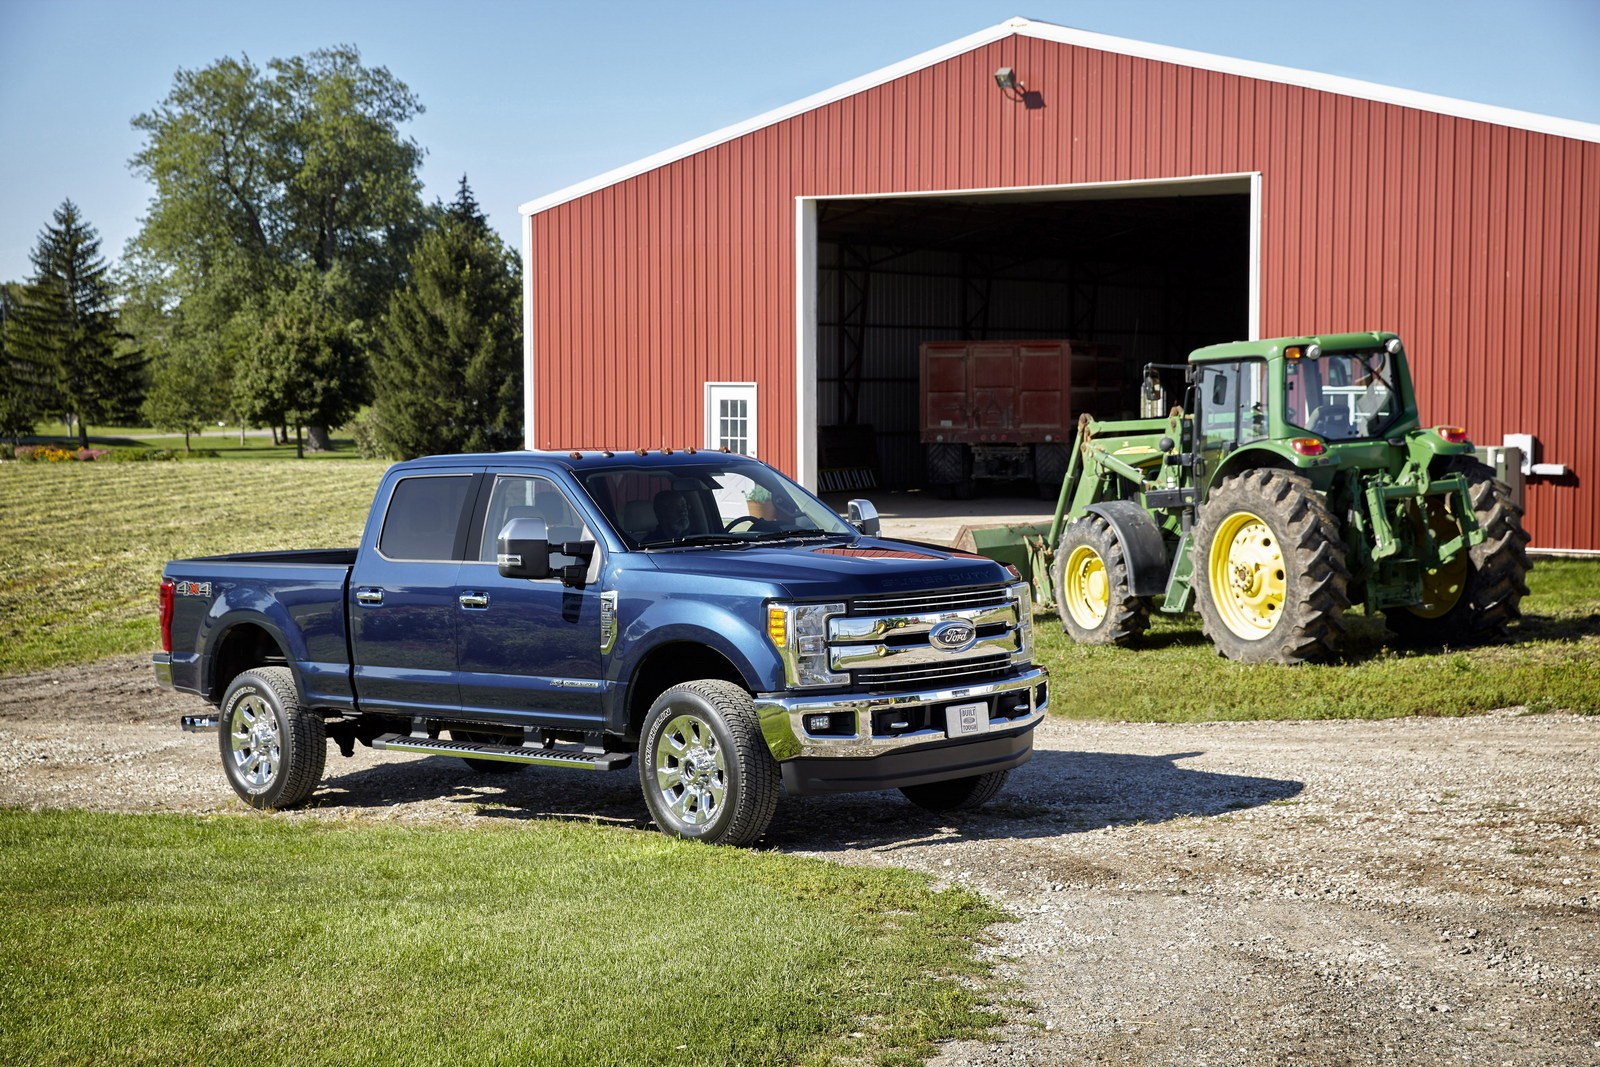 2017 ford super duty picture 648385 truck review top speed. Black Bedroom Furniture Sets. Home Design Ideas